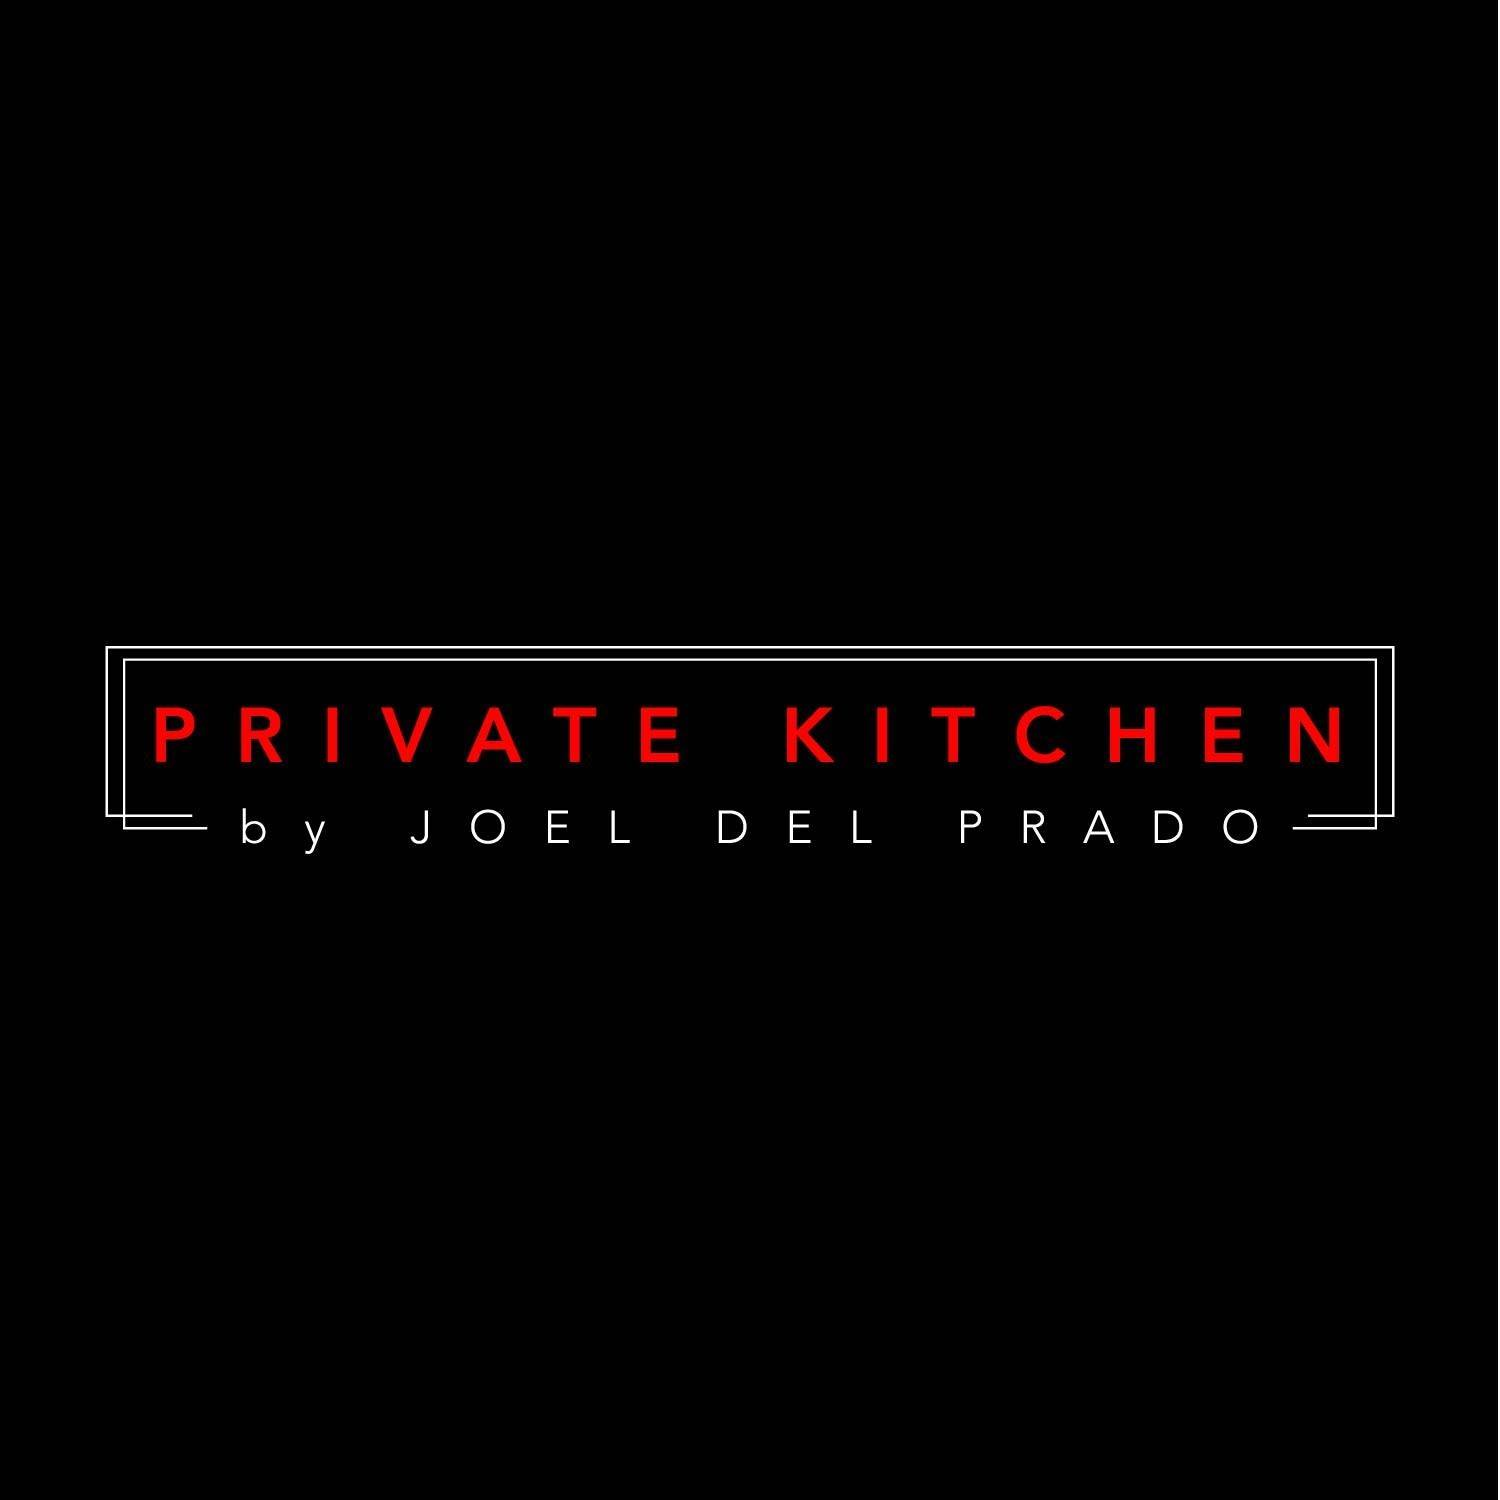 Foodie Trails in Cebu: Private Kitchen by Joel del Prado